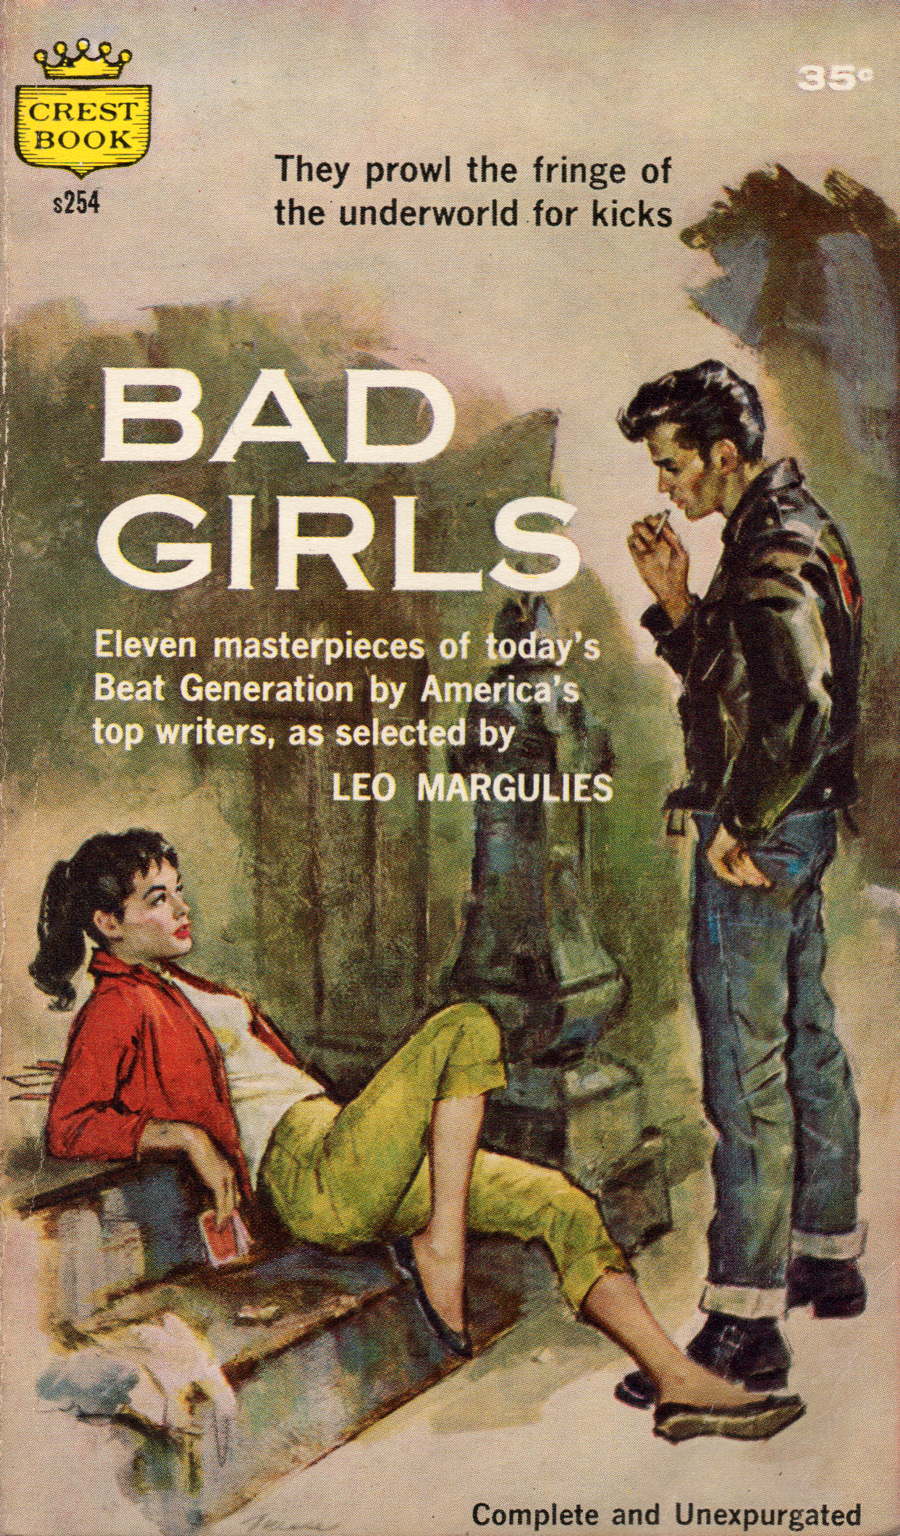 bad-girls-james-alfred-meese-pulp-fiction-art.png